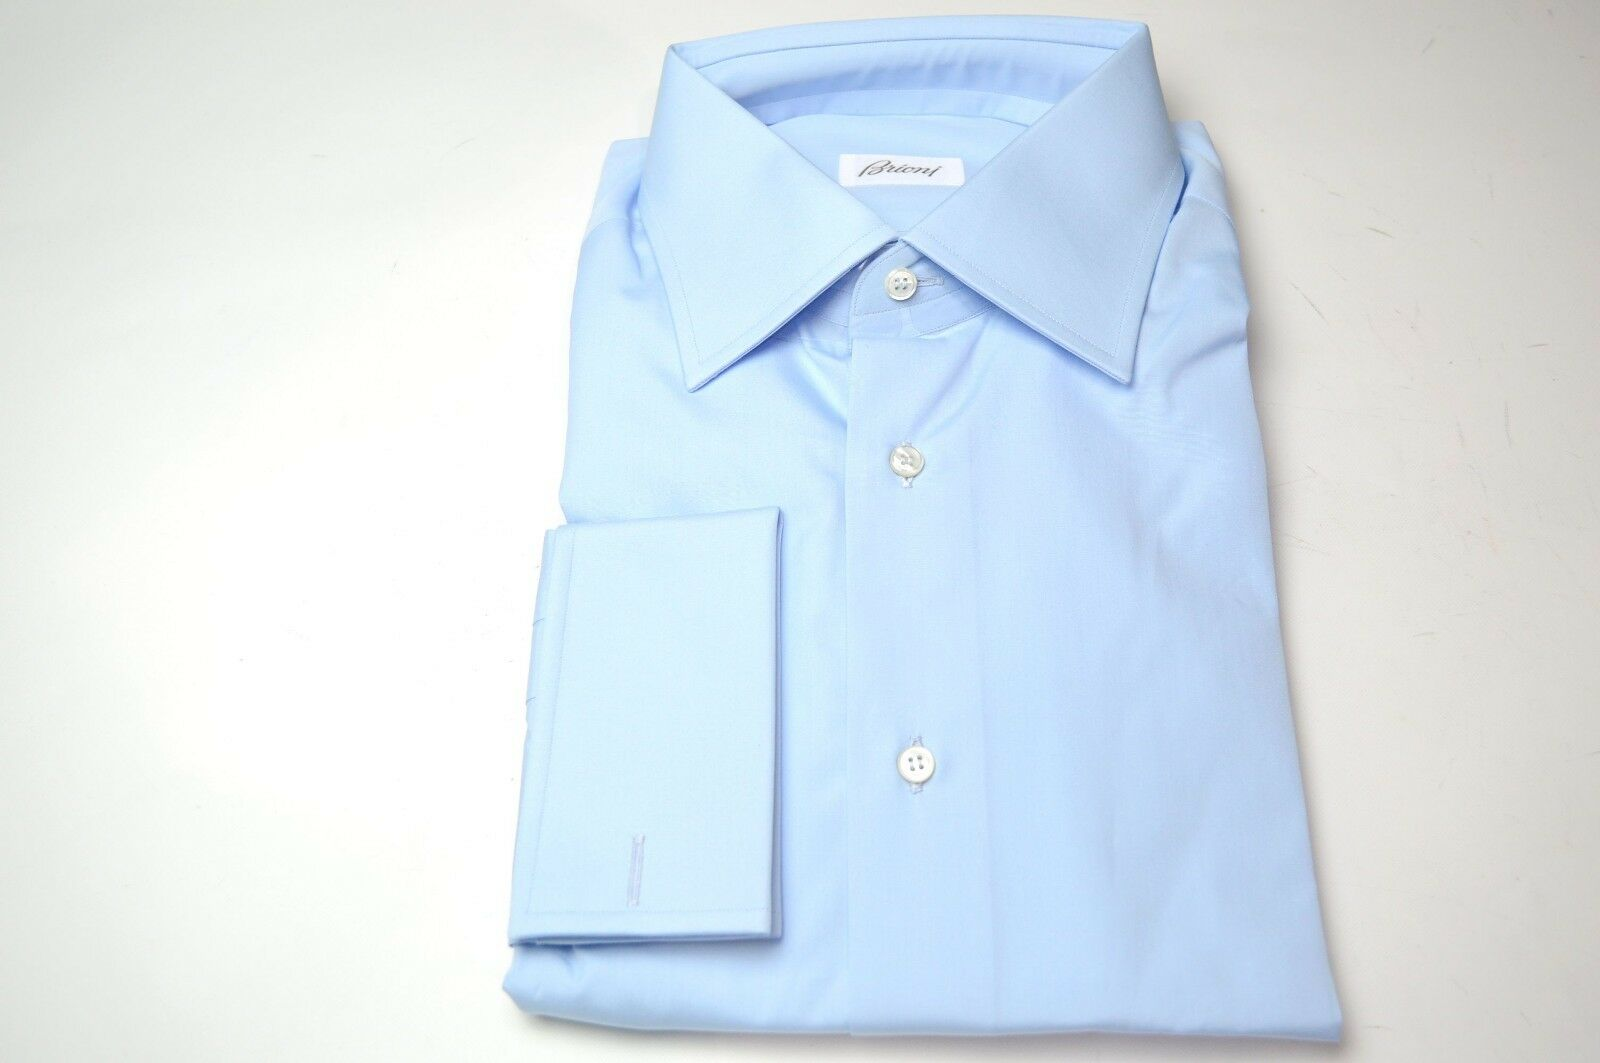 NEW  BRIONI Dress  SHIRT 100% Cotton Size 17 Us 43 Eu  (ARA132)